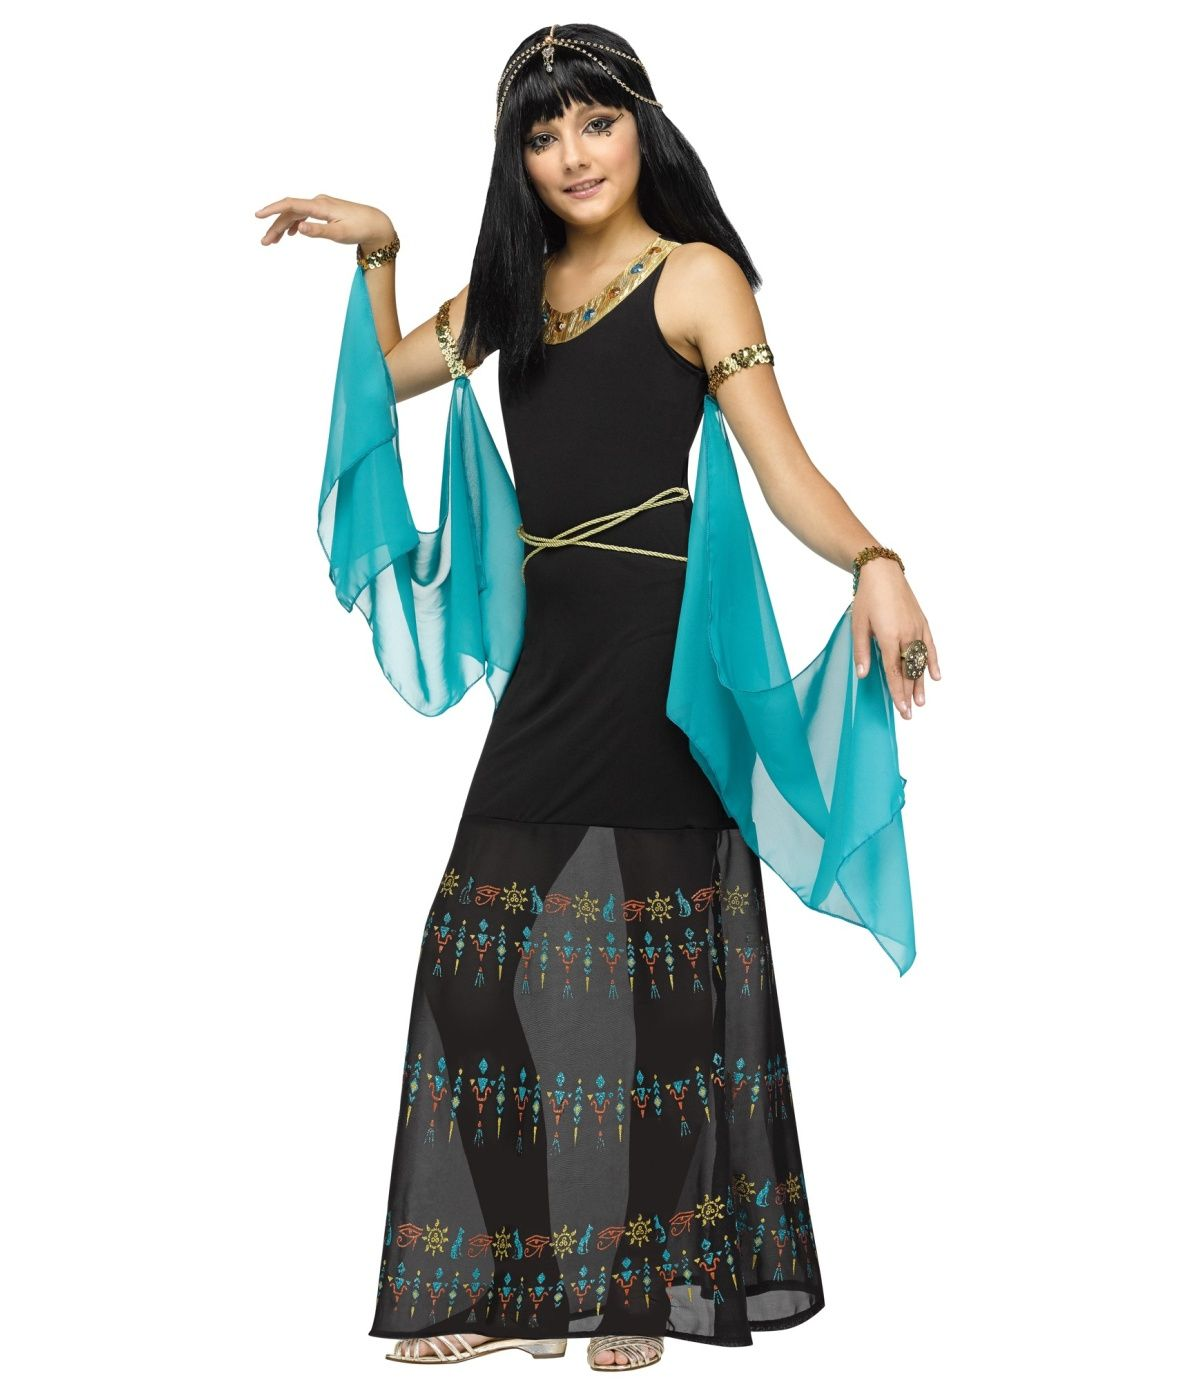 egyptian hieroglyph queen girls costume egyptian costumes - Egyptian Halloween Costumes For Kids